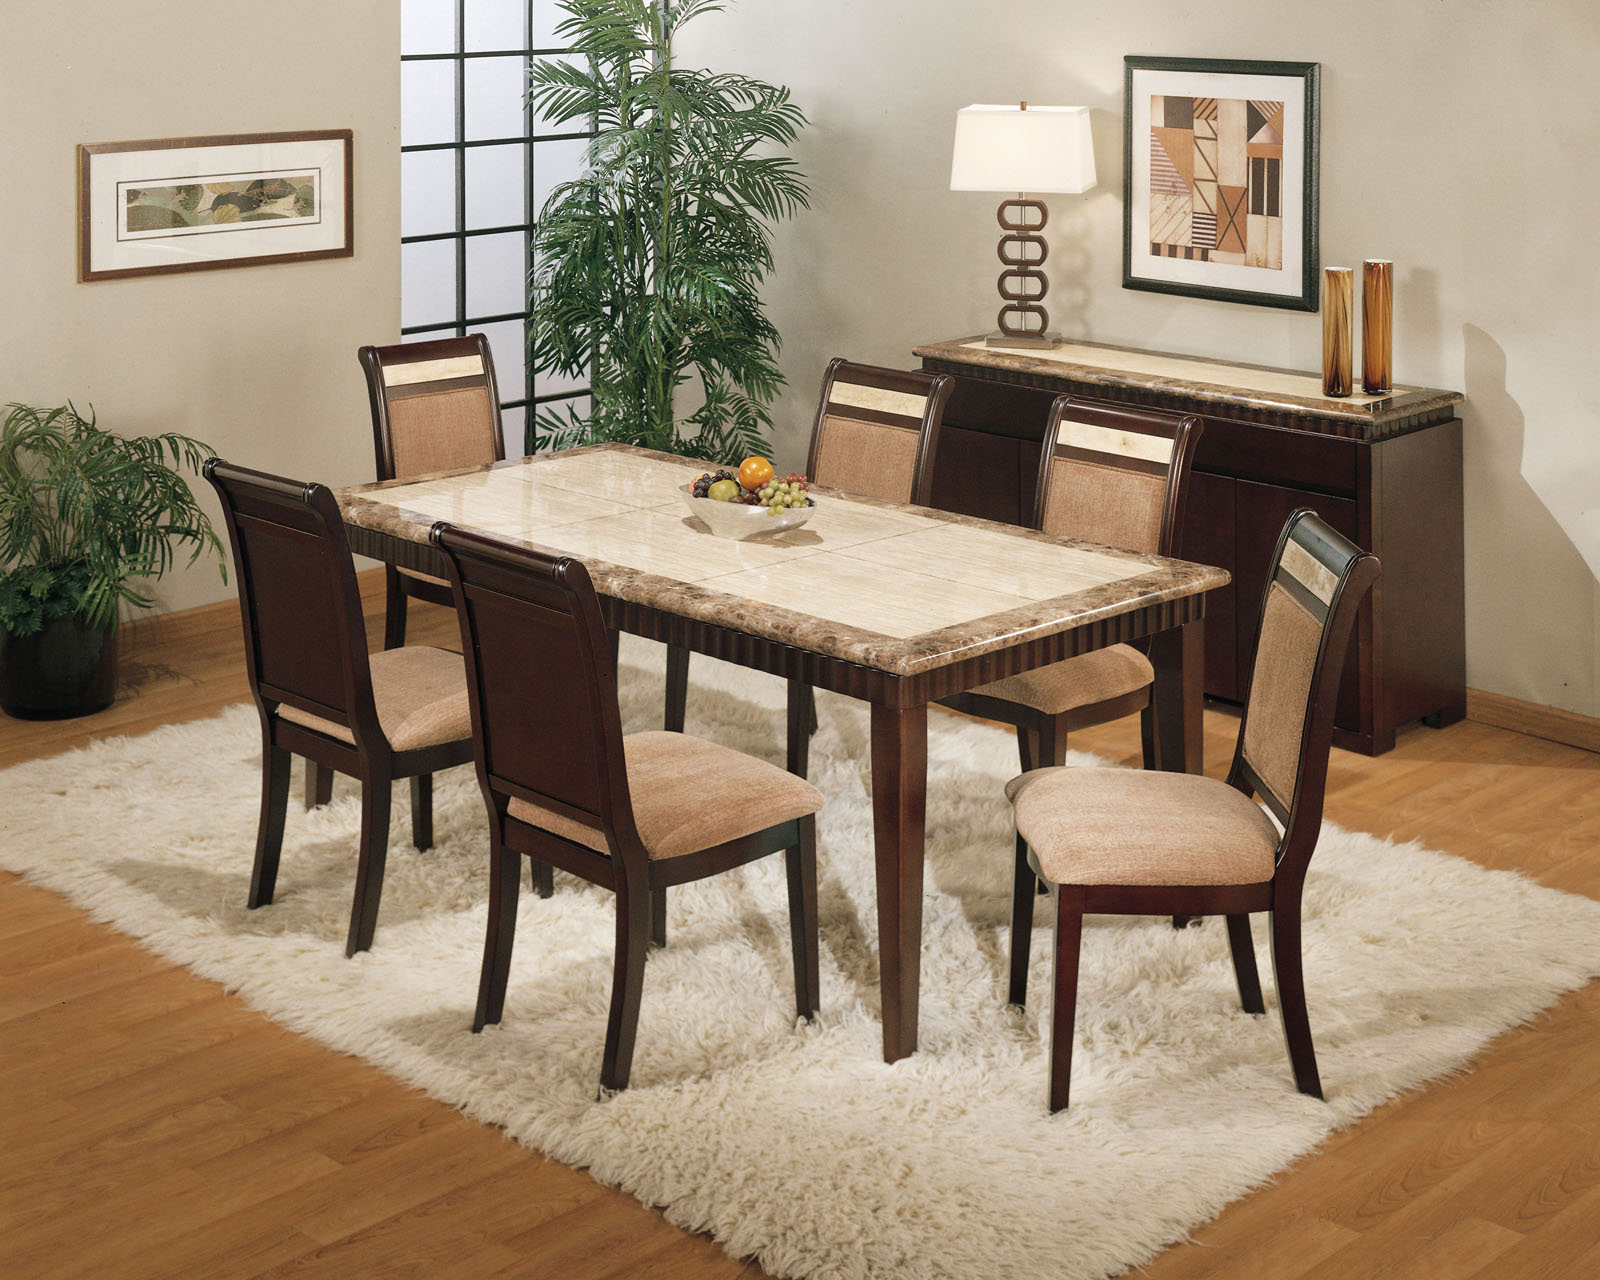 Granite Dining Table Set HomesFeed : Rectangular Granite Dining Table Set With White Fur Rug from homesfeed.com size 1600 x 1280 jpeg 797kB